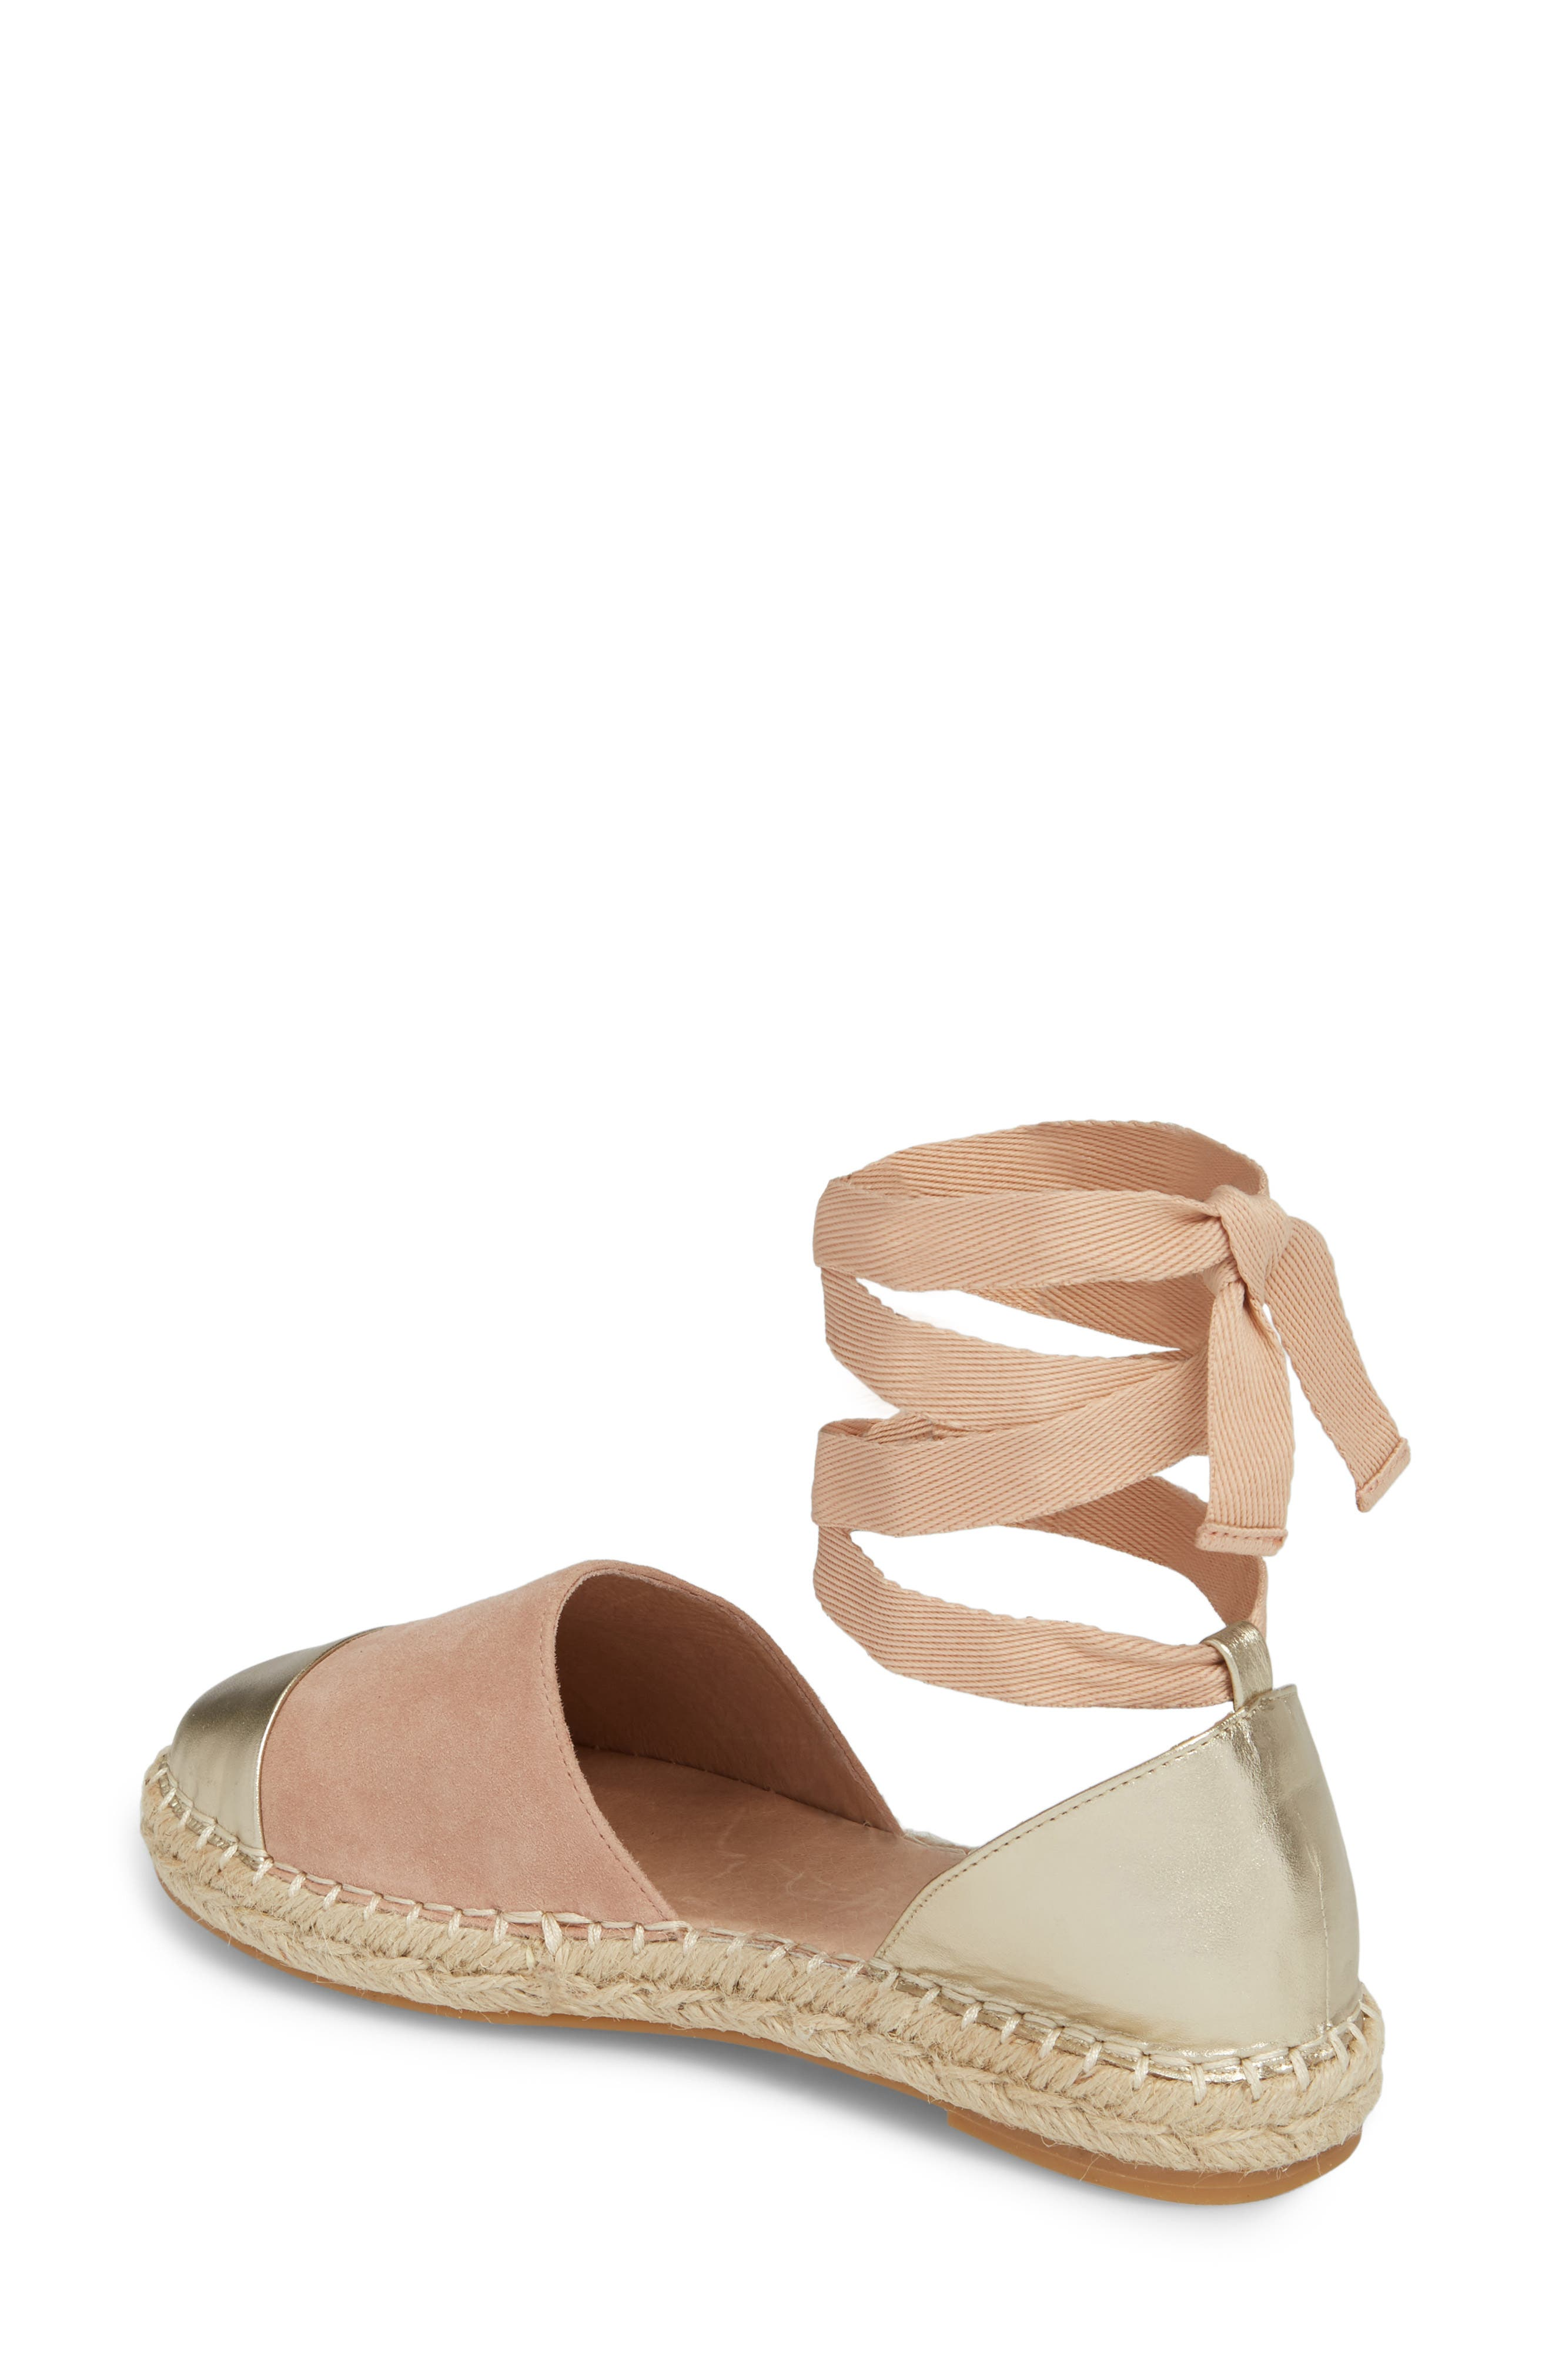 Cain Ankle-Tie Sandal,                             Alternate thumbnail 2, color,                             Nude Suede/ Gold Leather